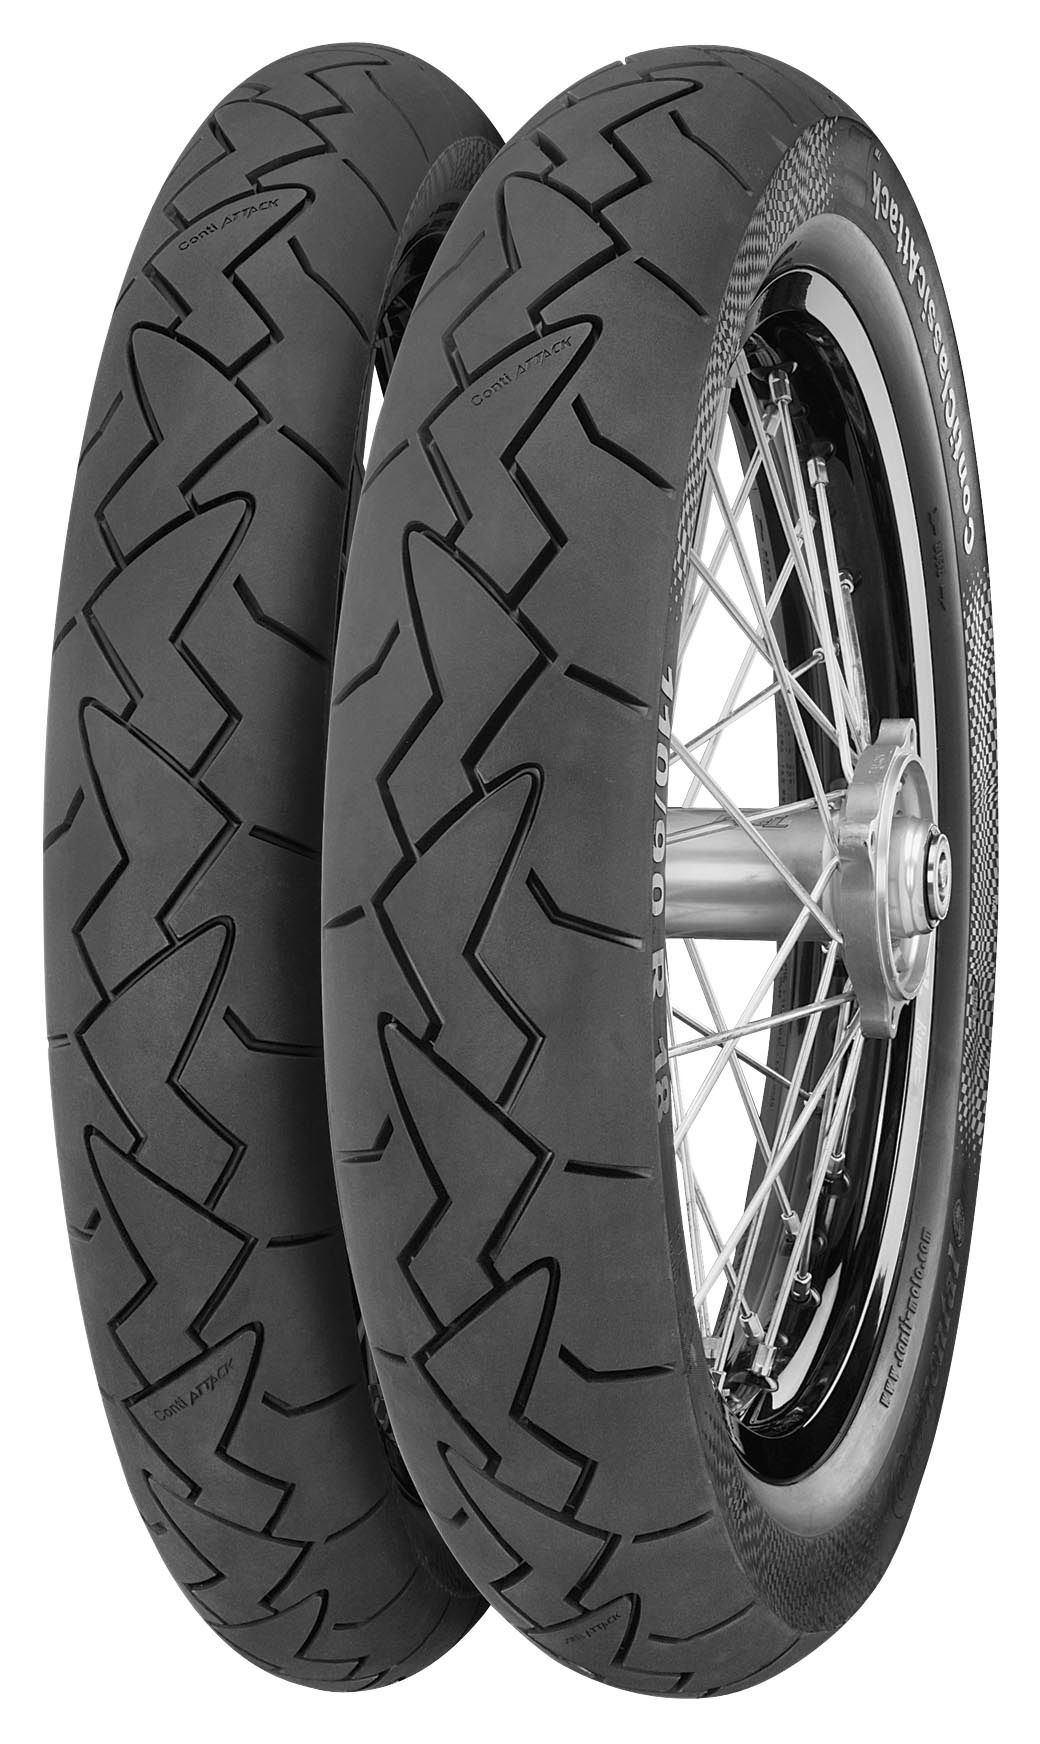 Continental Snow Tires >> Continental Classic Attack Vintage Radial Tires | 15% ($28 ...